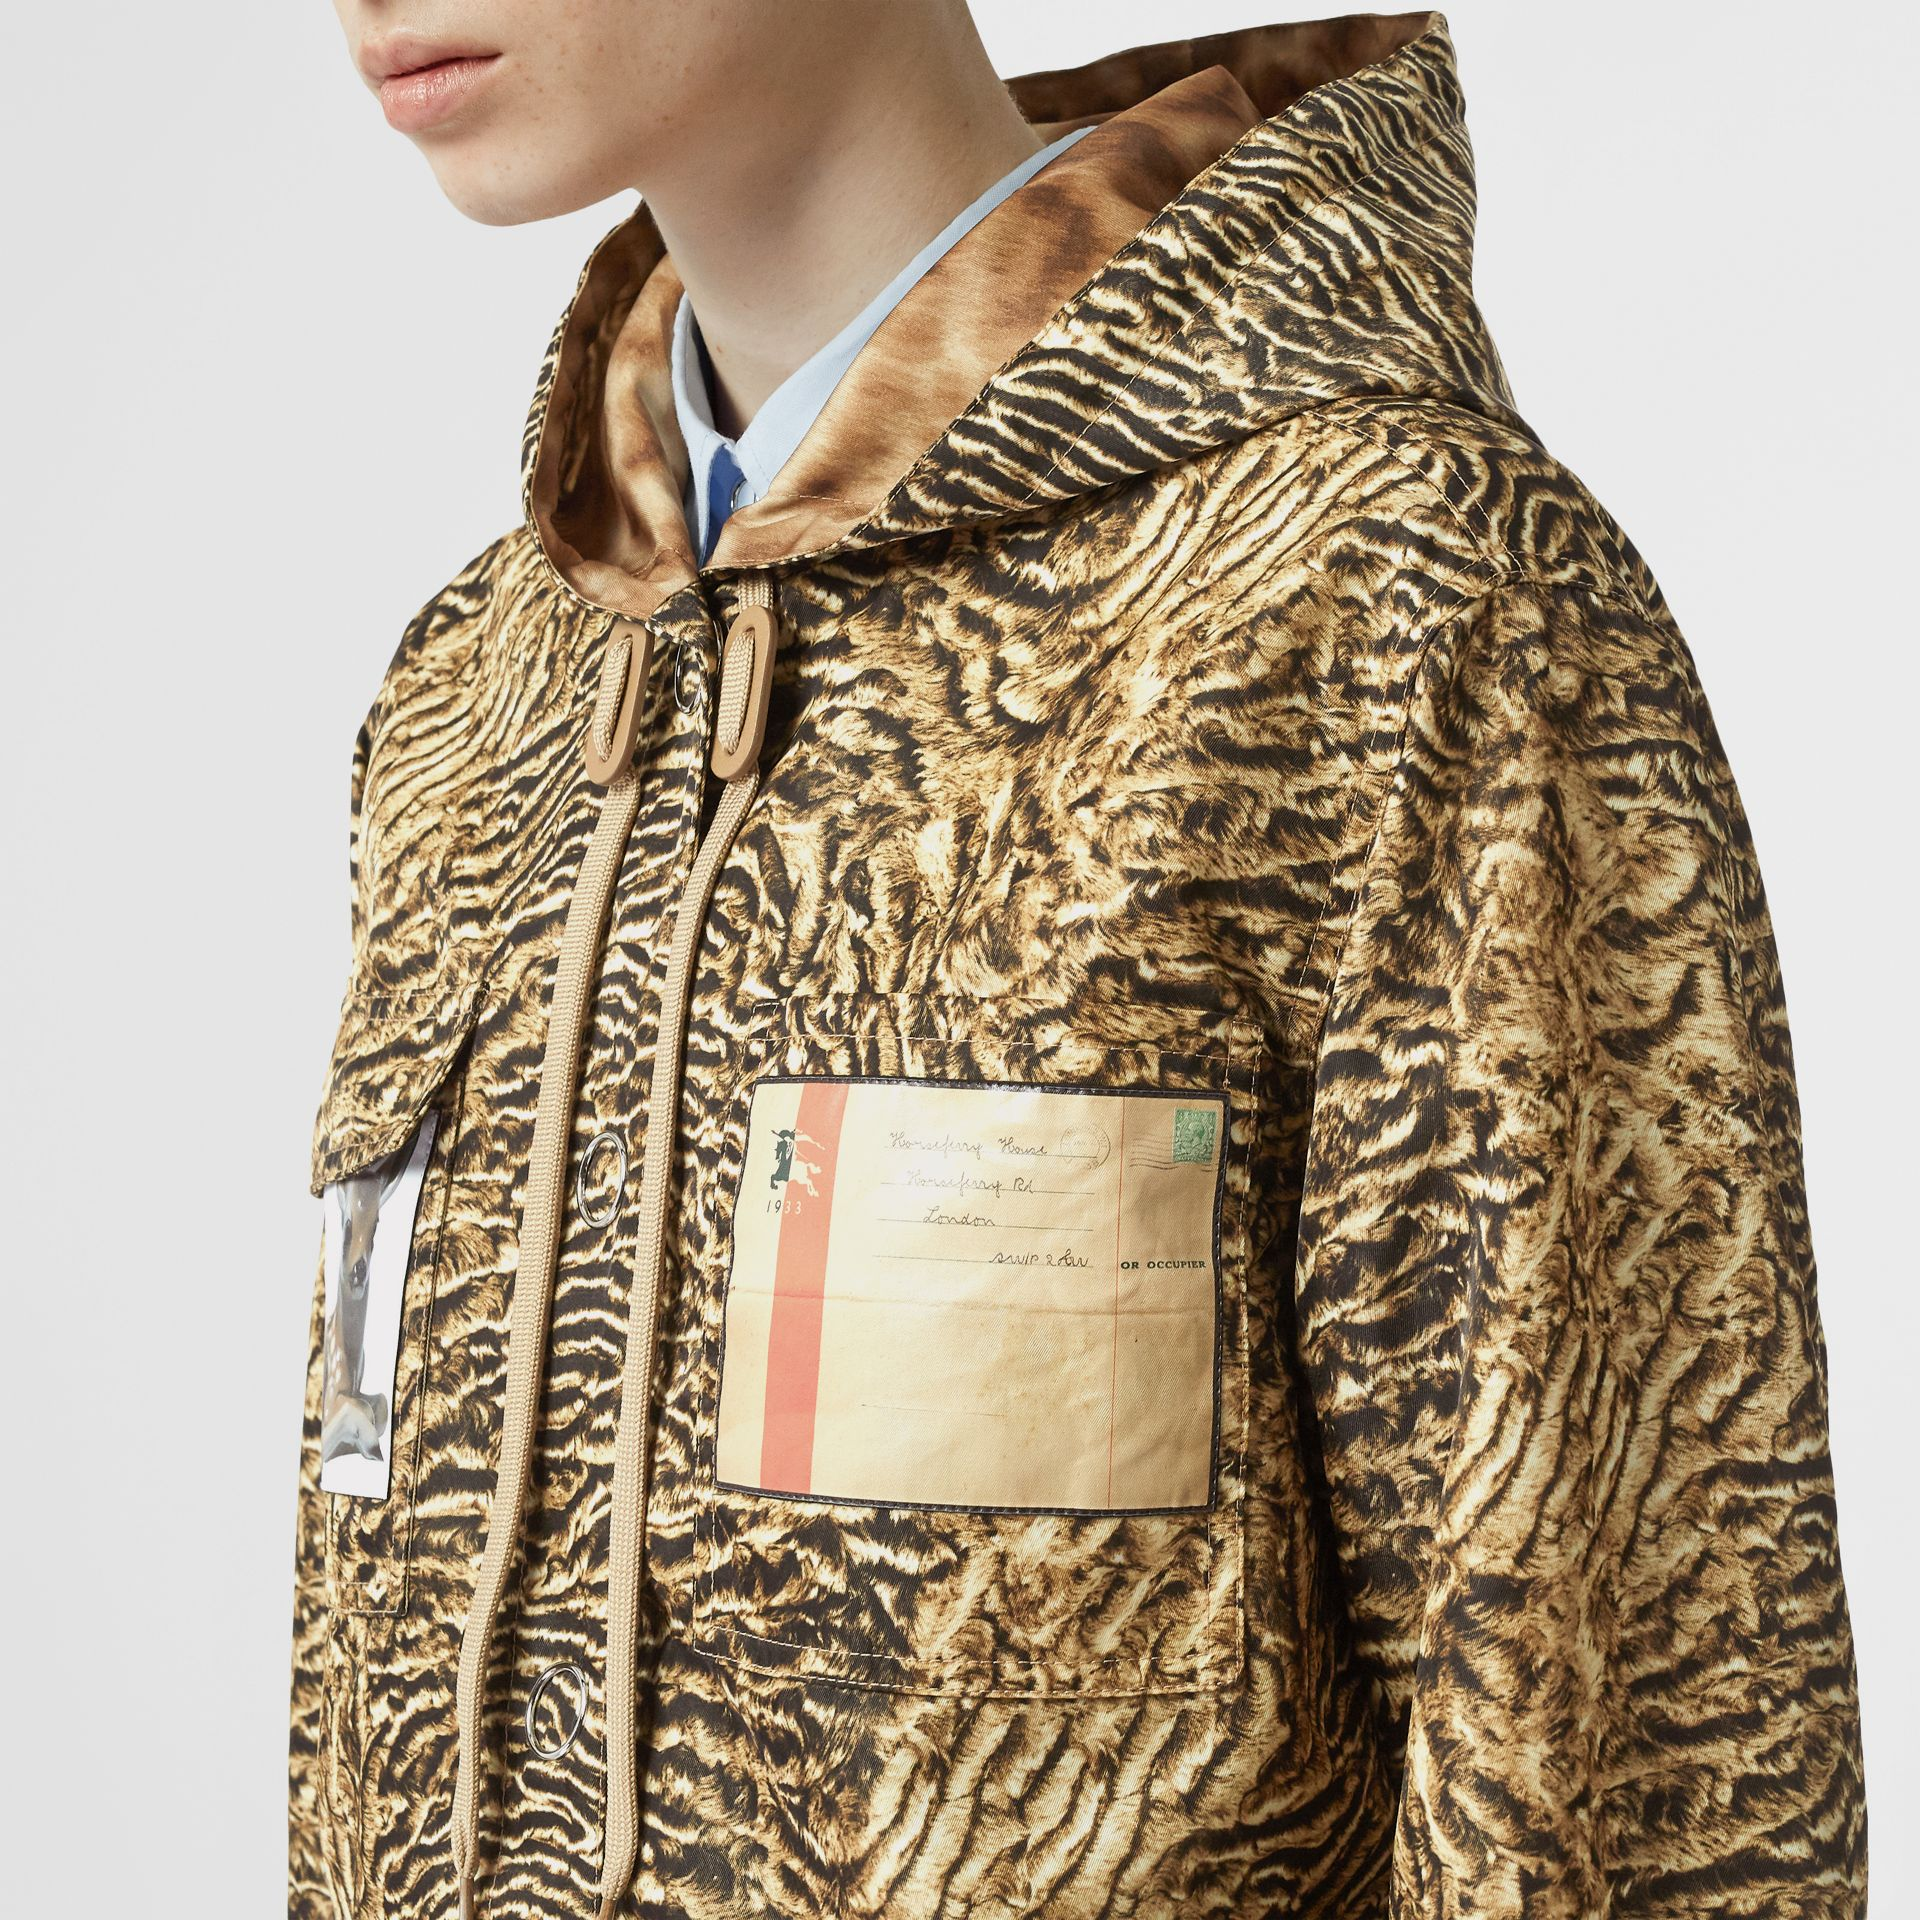 Tiger Print Lightweight Hooded Jacket in Beige - Women | Burberry United Kingdom - gallery image 4